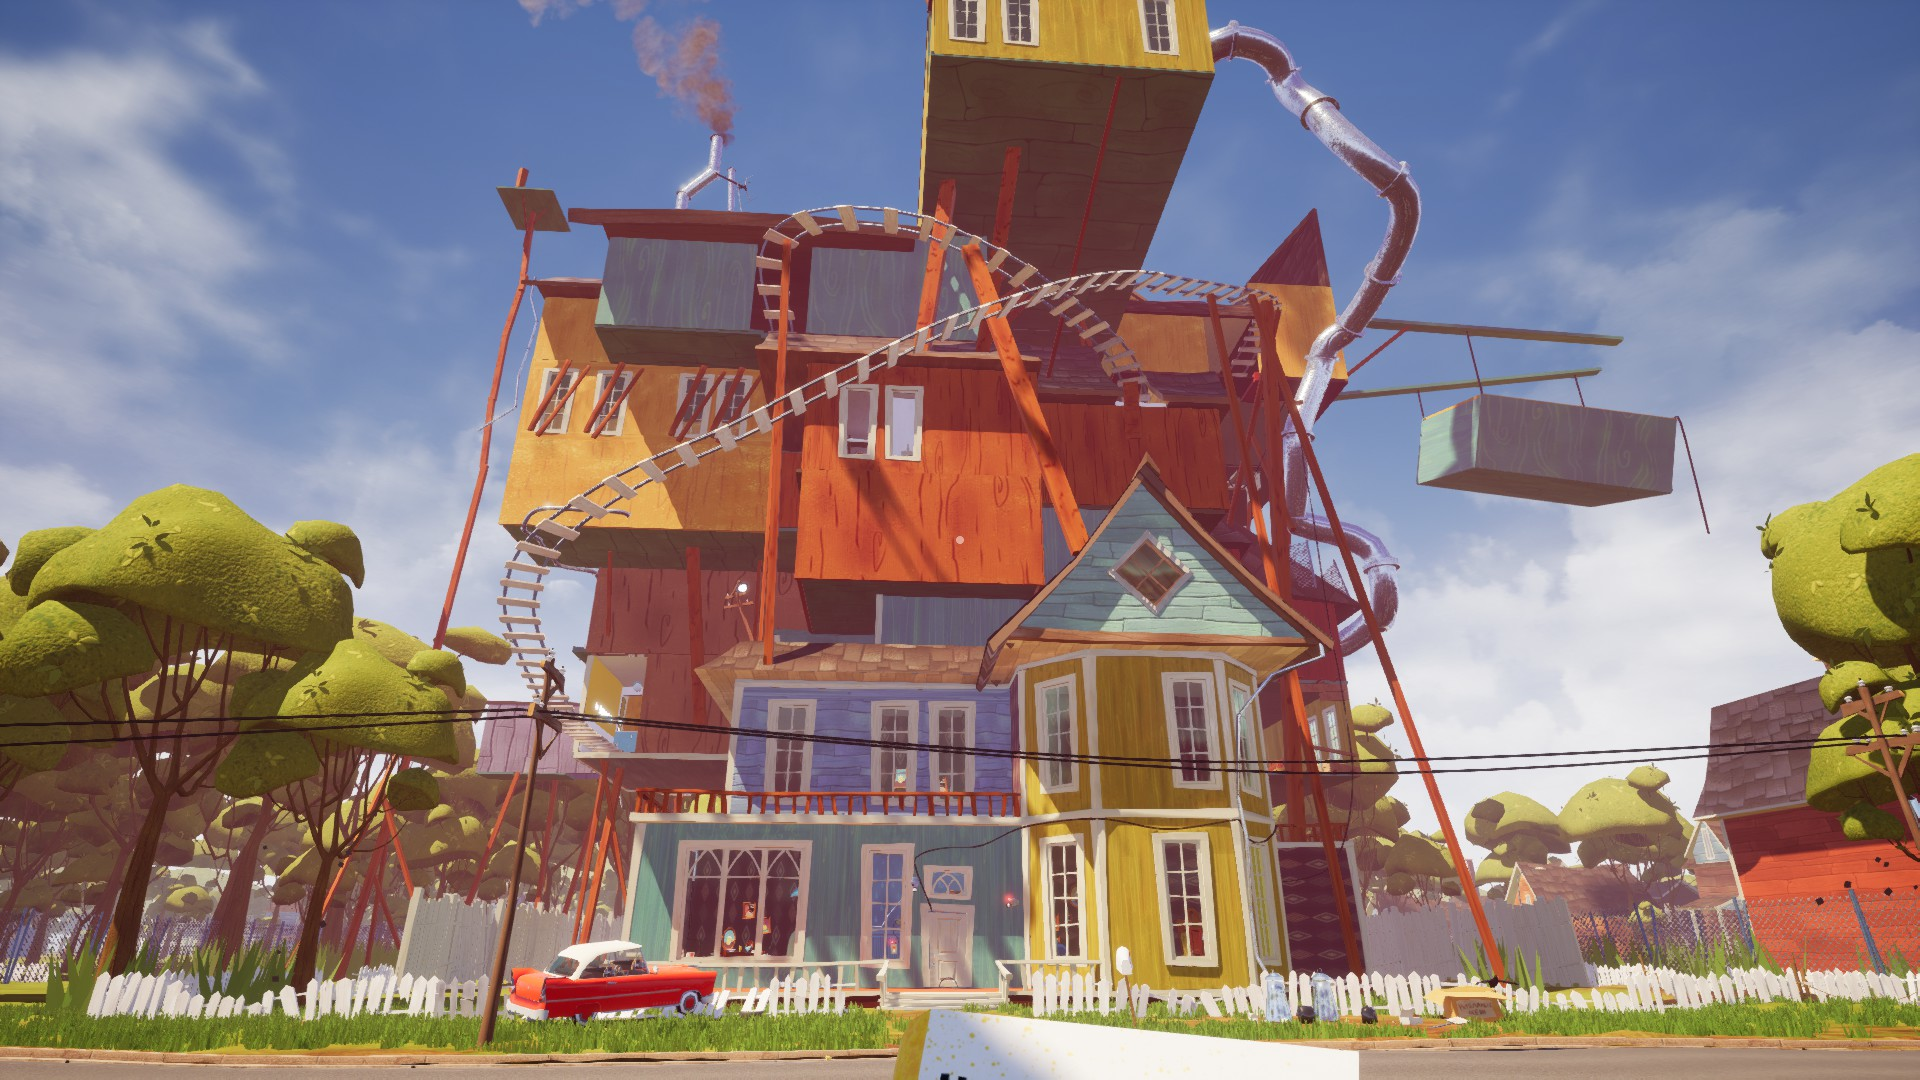 The hello neighbor house - There S Also A Windmill On The Top But I Haven T Figured Out How To Get Up There